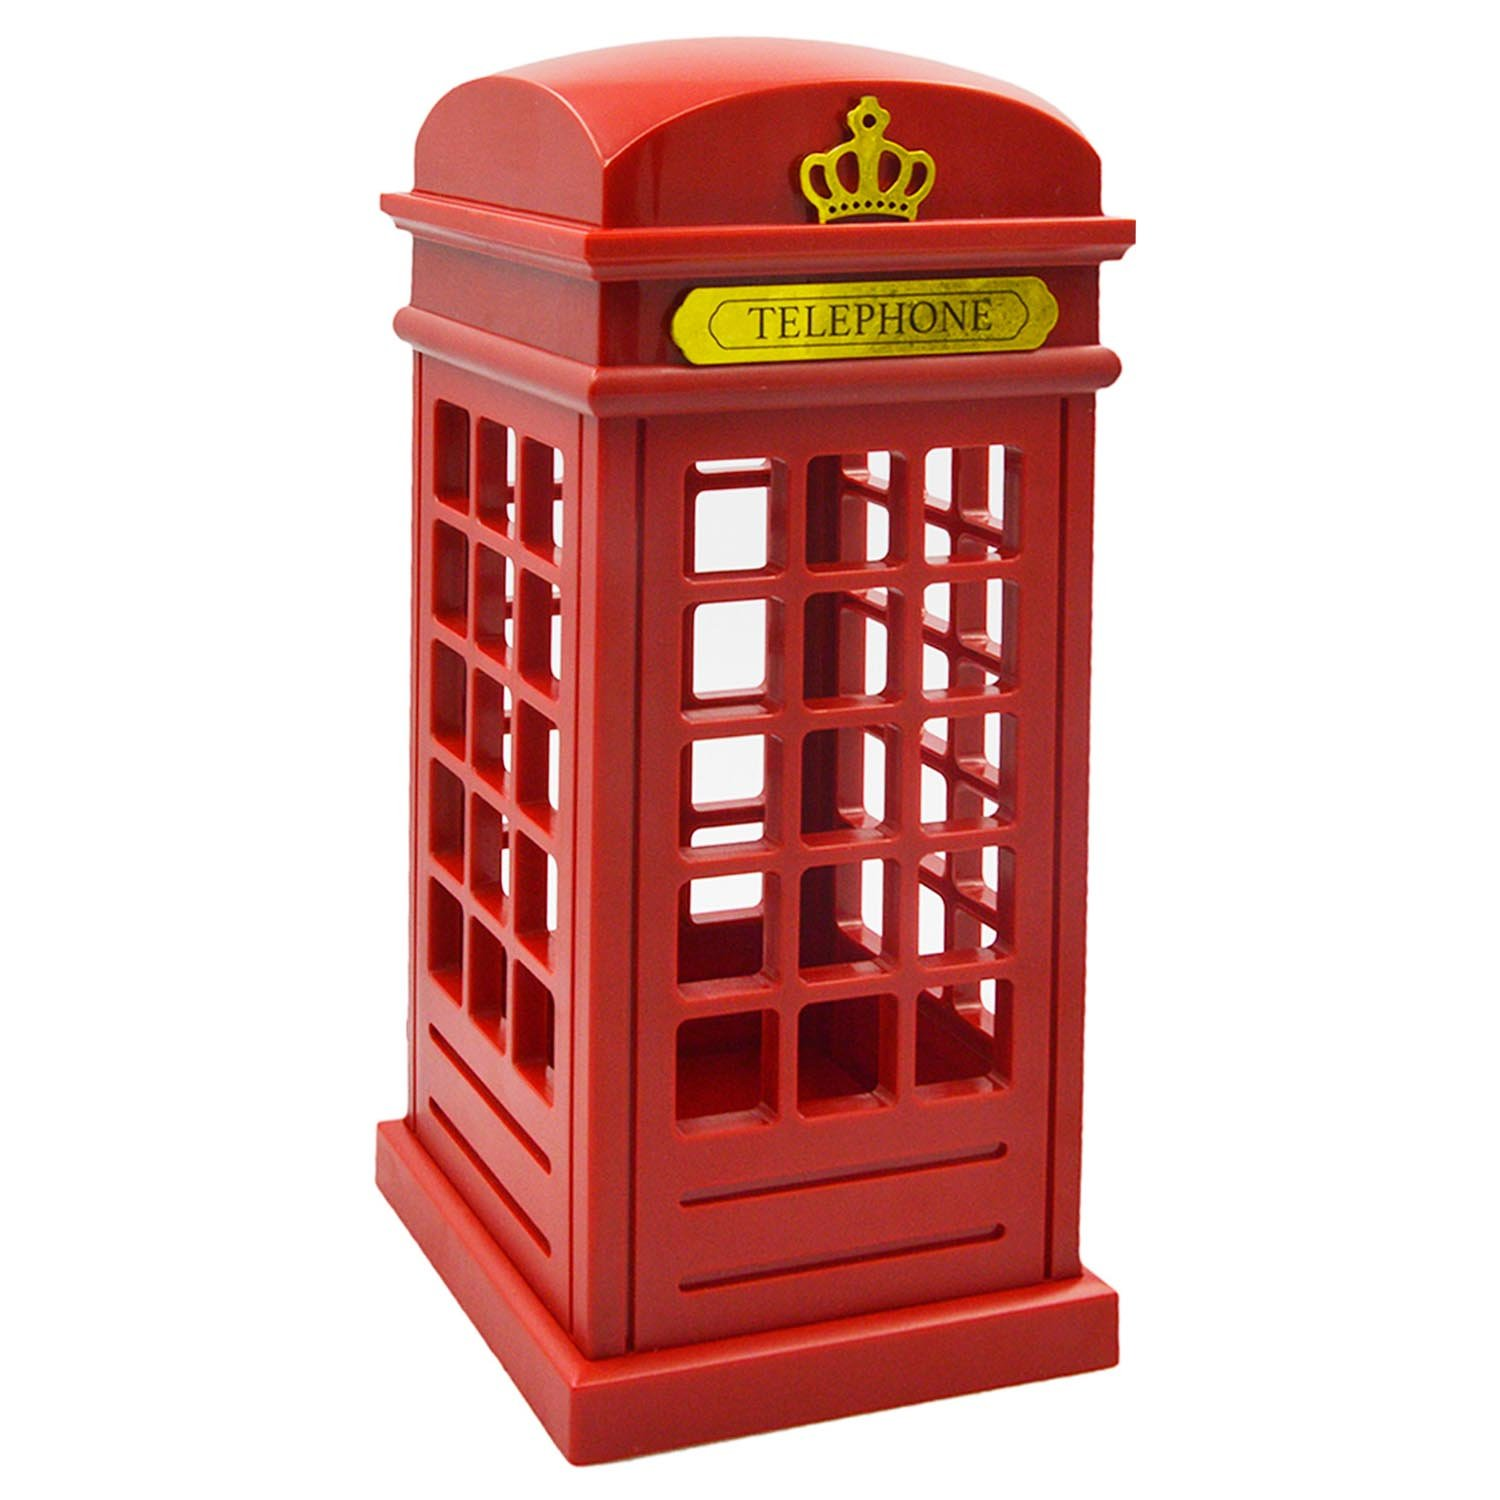 Vintage London Telephone Booth Designed USB Charging LED Night Lamp Touch Sensor Table Desk Light for Bedroom Students Dormitory Illumination Home Bar Decoration Novelty Birthday Adjustable Brightness Elisona